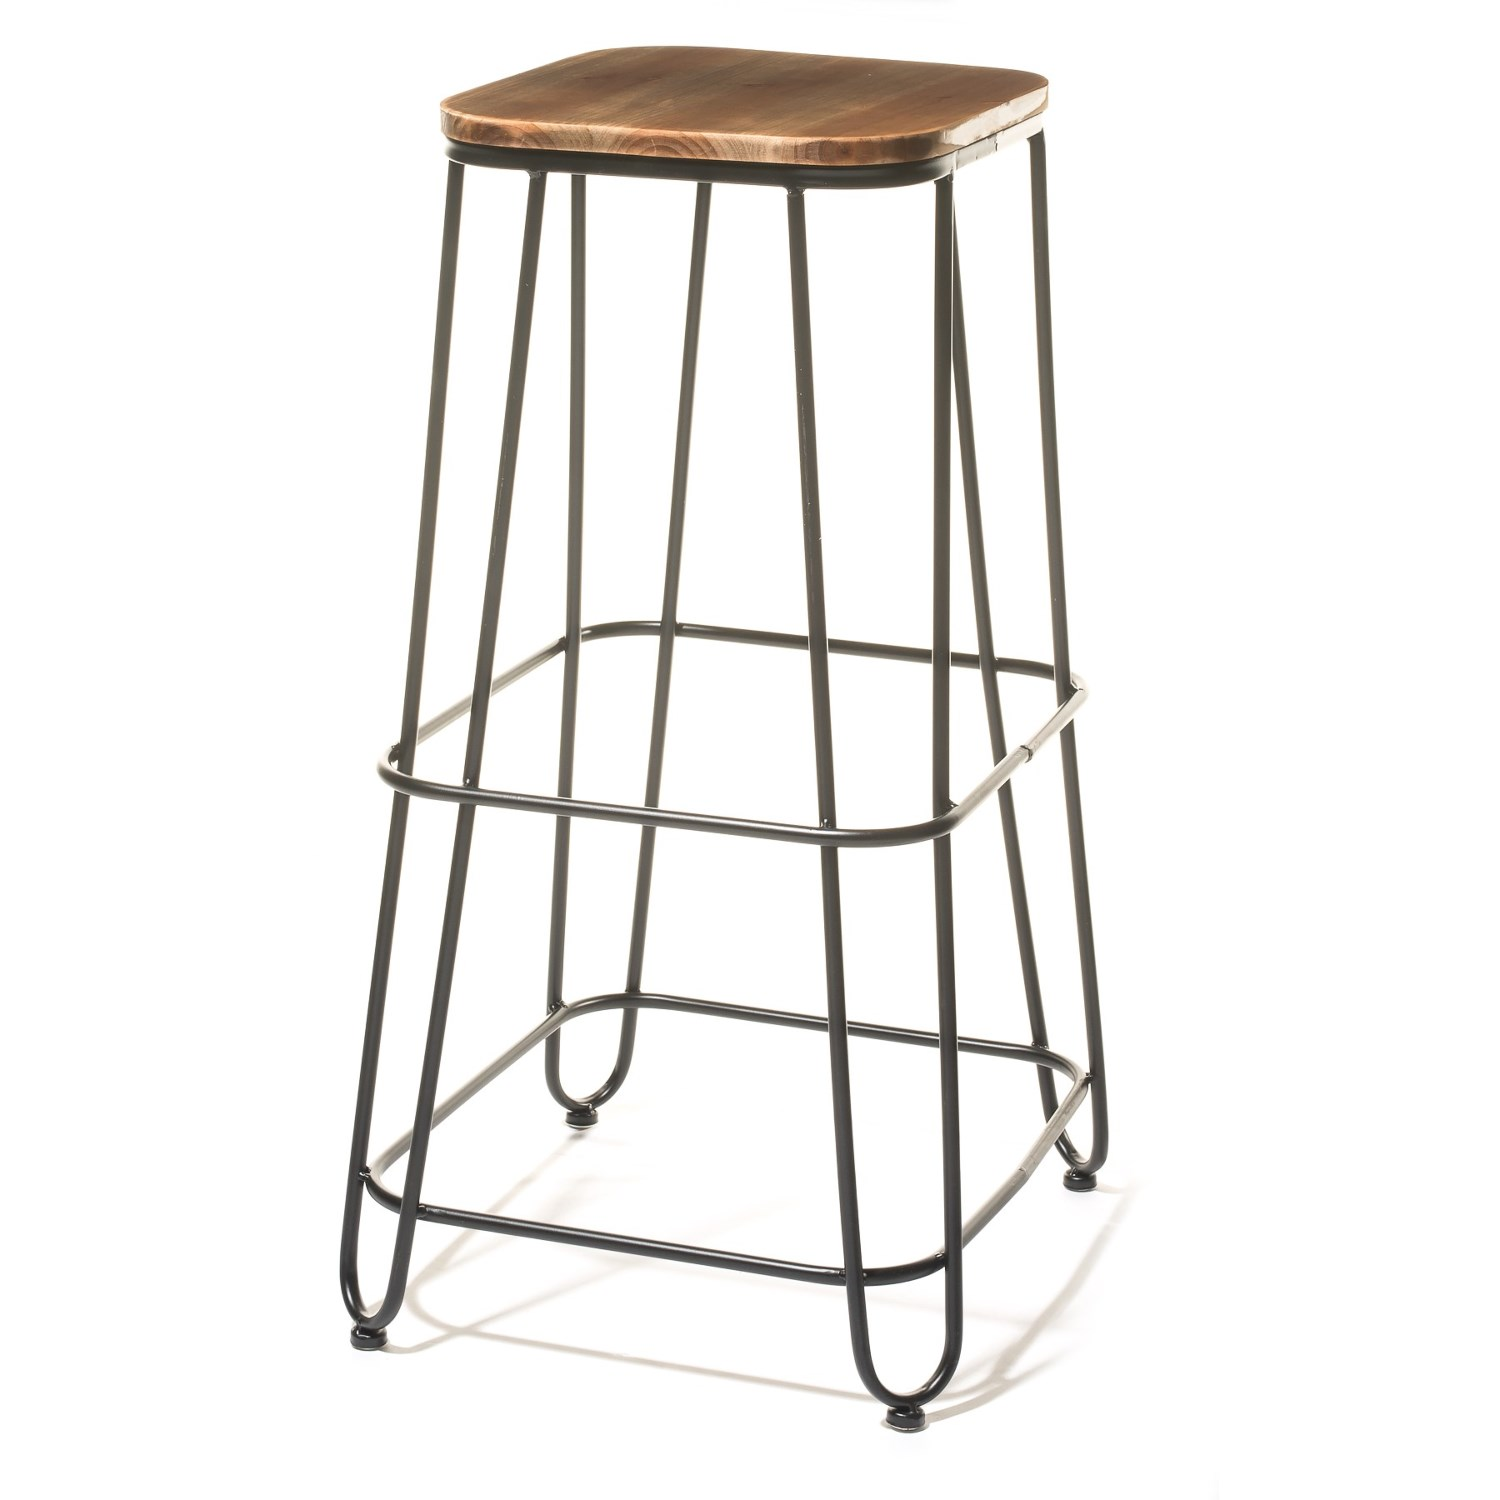 Bar stool with his own hands 89